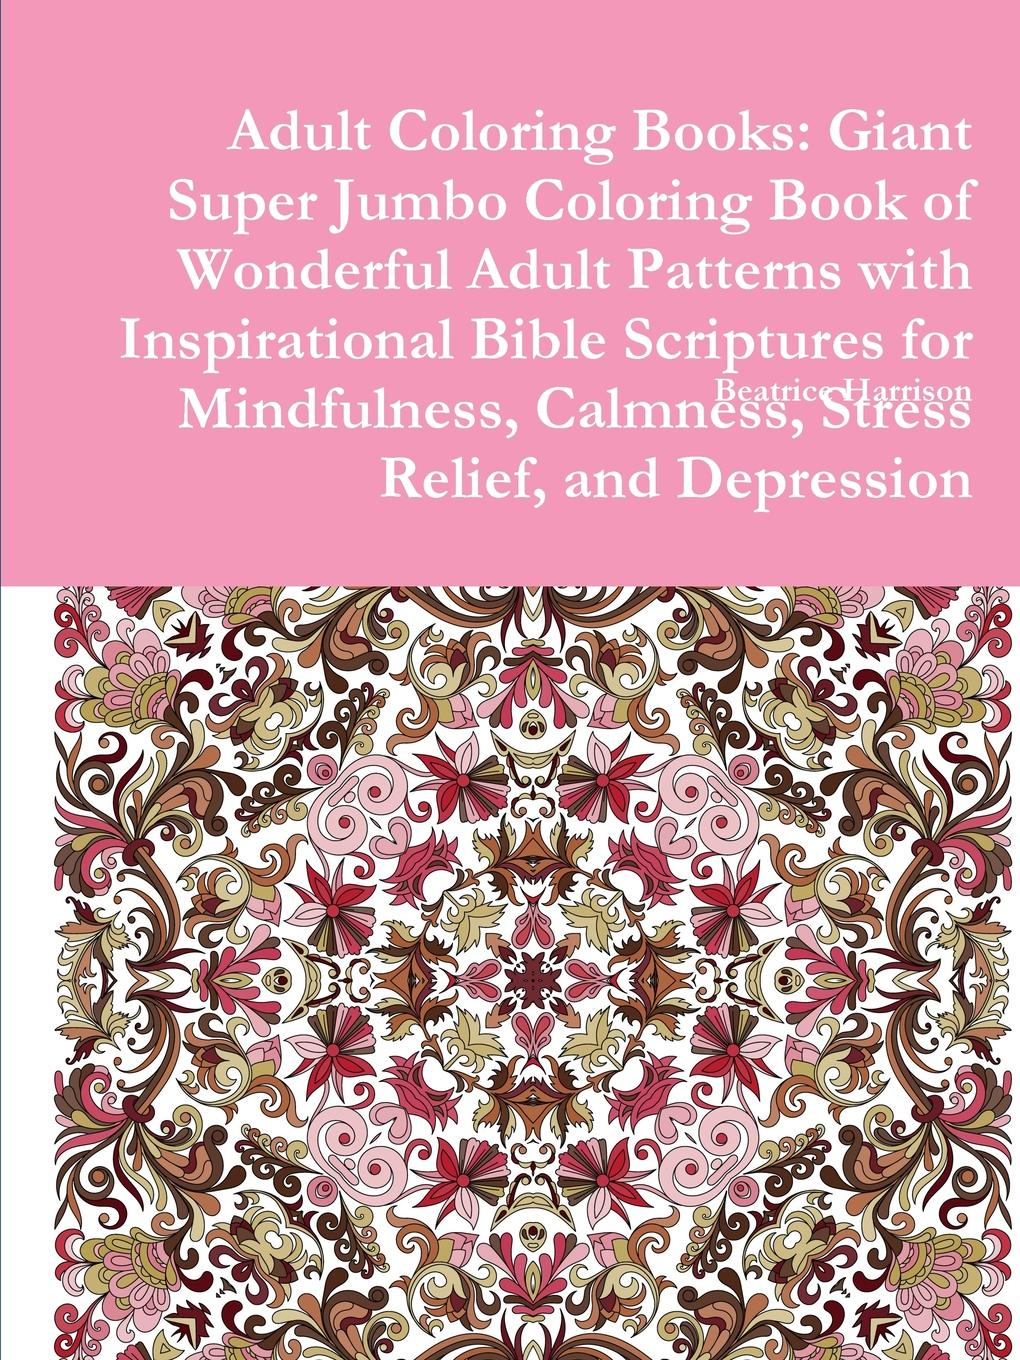 Beatrice Harrison Adult Coloring Books. Giant Super Jumbo Coloring Book of Wonderful Adult Patterns with Inspirational Bible Scriptures for Mindfulness, Calmness, Stress Relief, and Depression 20 ways to draw a dress and 44 other fabulous fashions and accessories coloring book for adult children 112 page